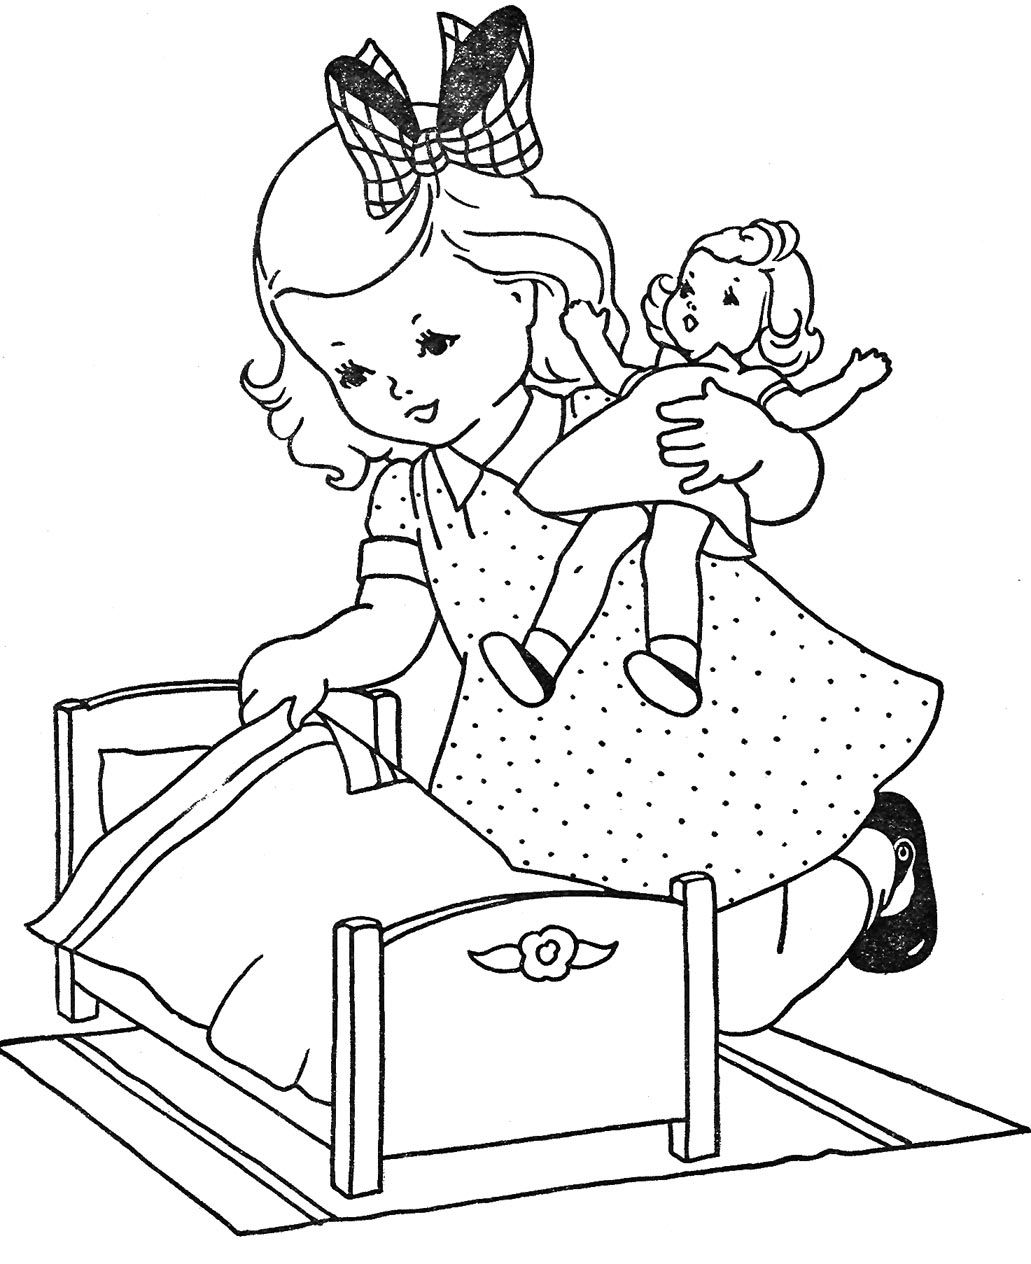 printable colouring pages for girls printable coloring pages for girls 10 and up coloring home colouring girls for pages printable